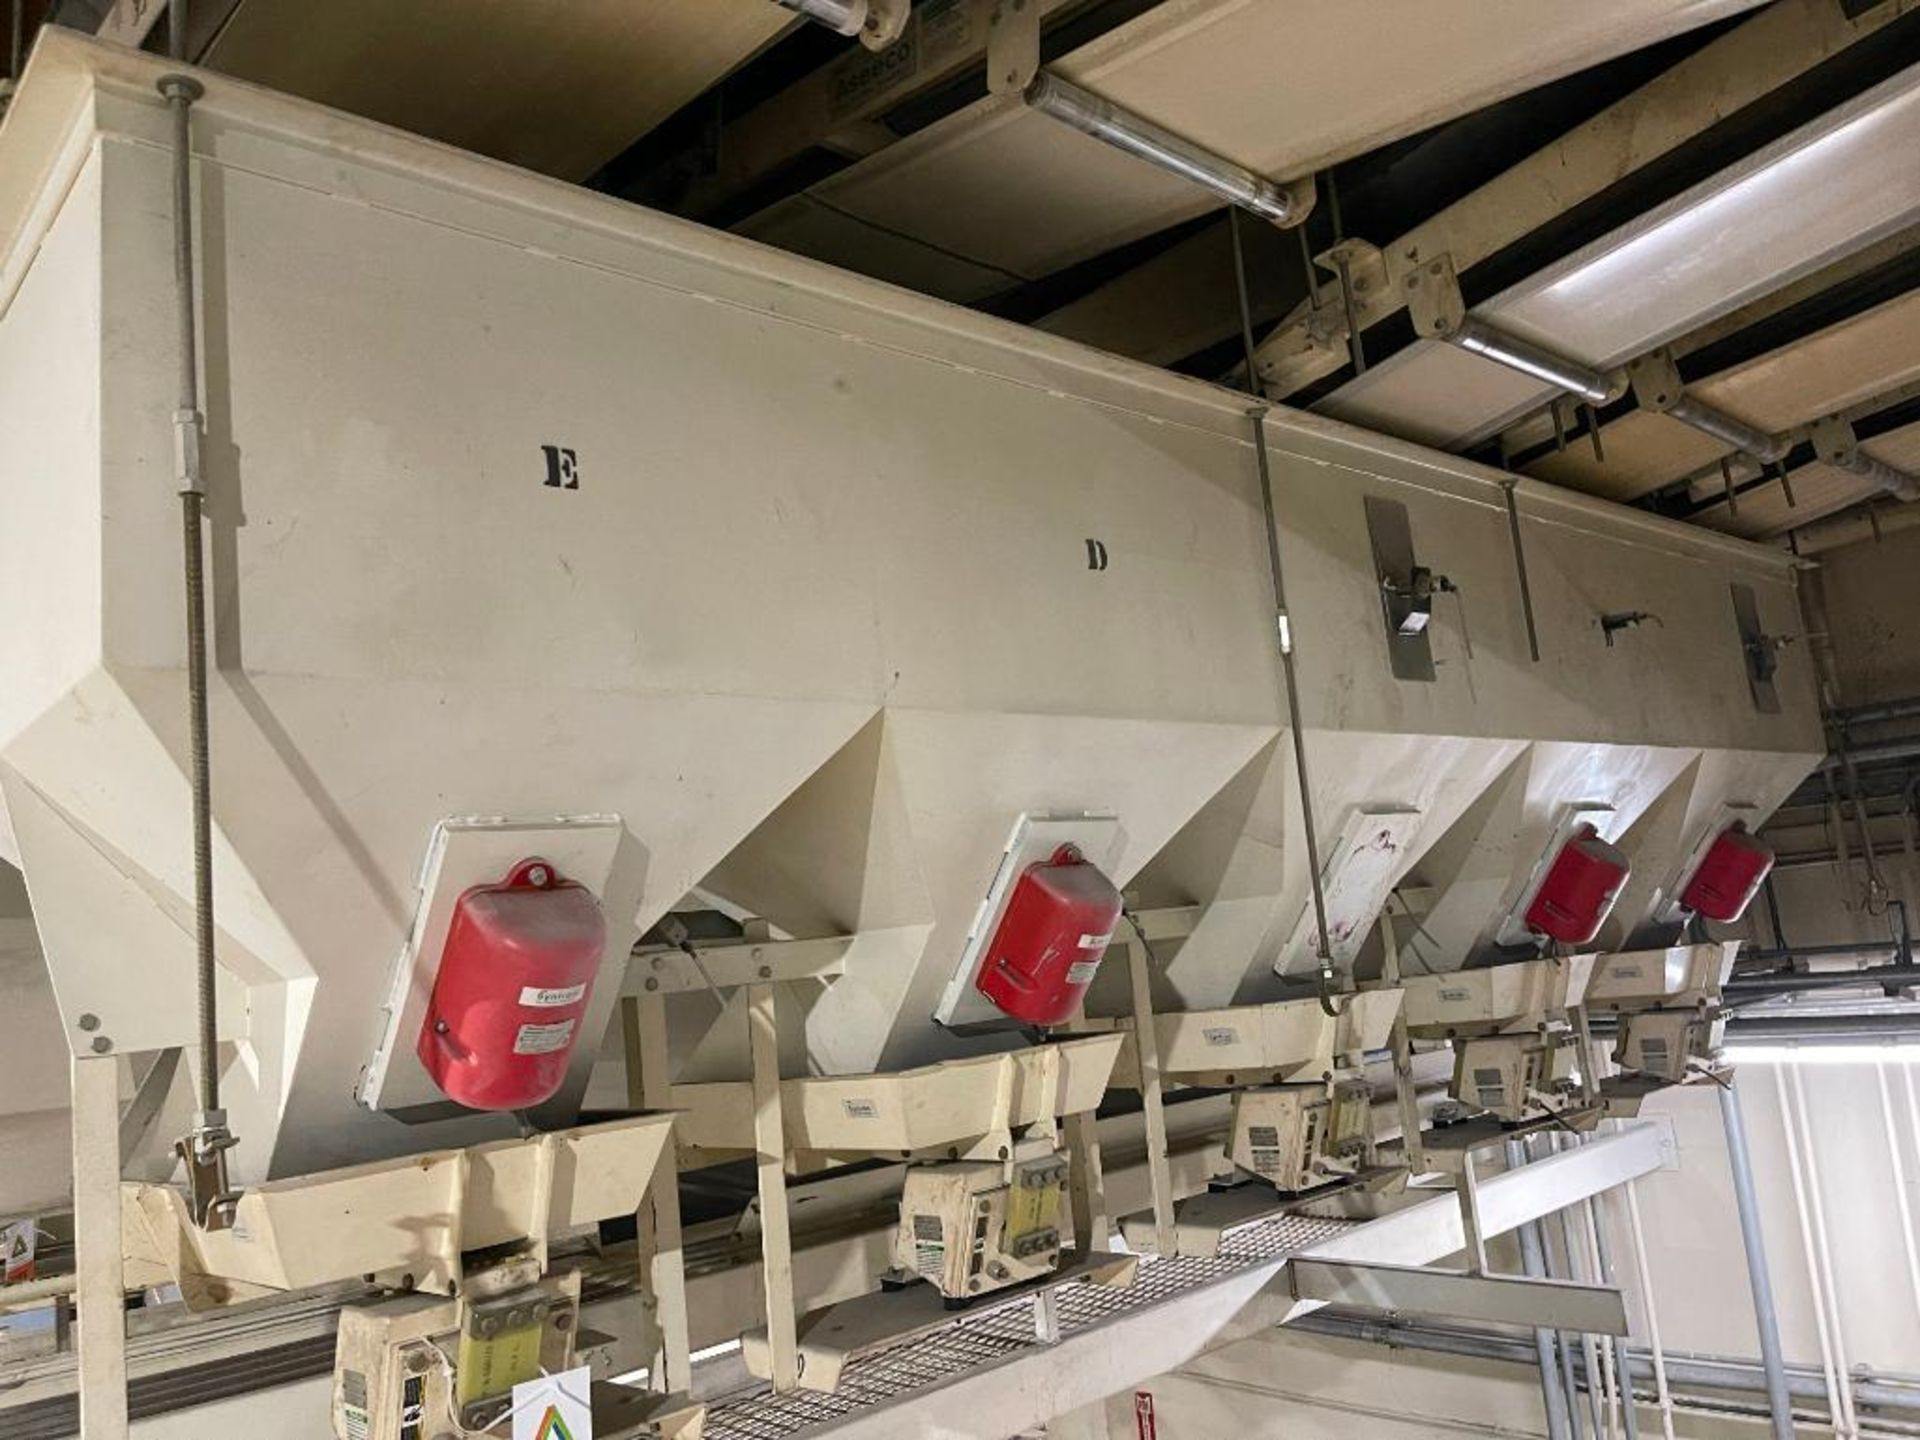 Aseeco 5-bin blending system with 5 Syntron vibratory feeders on bottom - Image 14 of 18